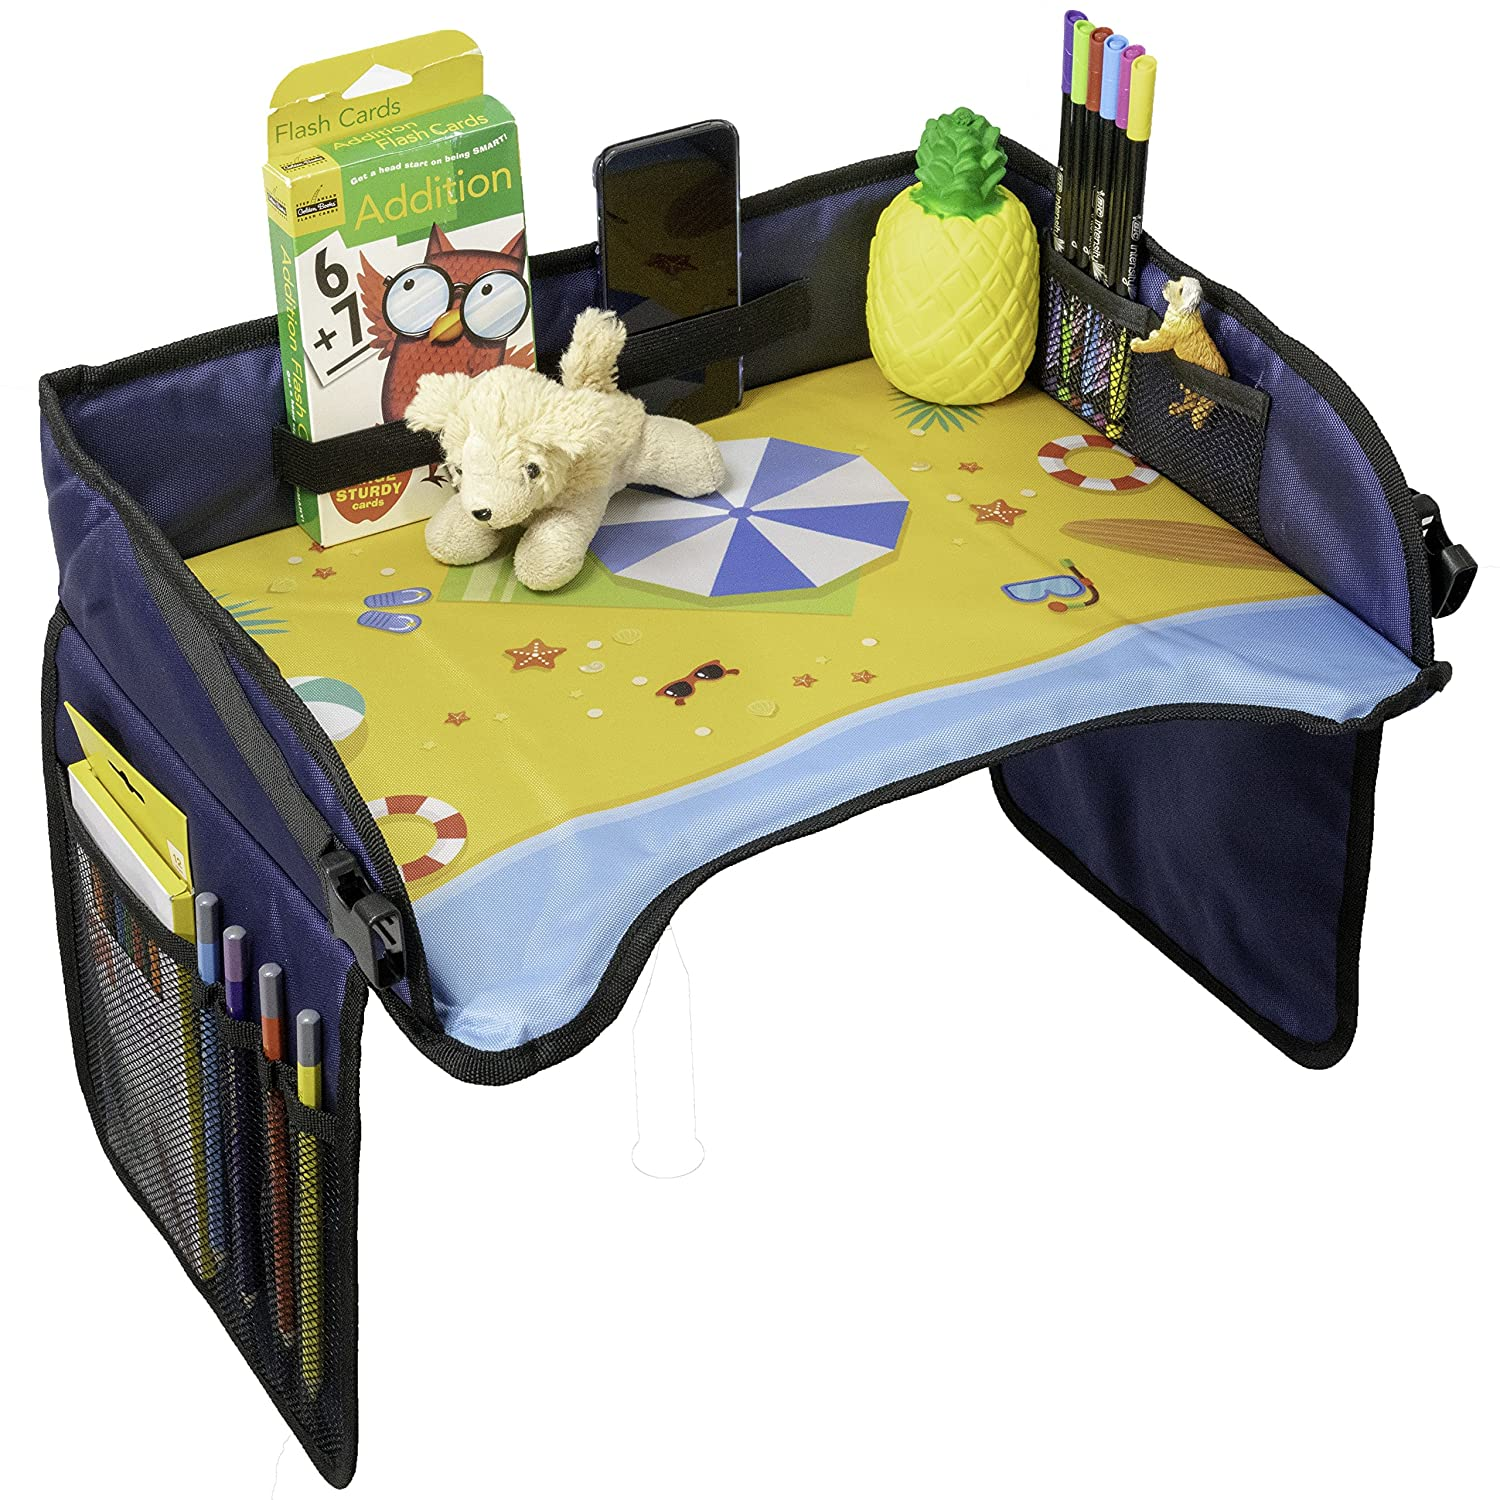 Toddler Car Seat Travel Tray by Samba Kids, Kids Travel Tray for Car or Airplane Seats, Booster Seat, Activity Lap Organizer and Snack Tray, Keep Kids Busy on Road Trips or at Home (Mountain)